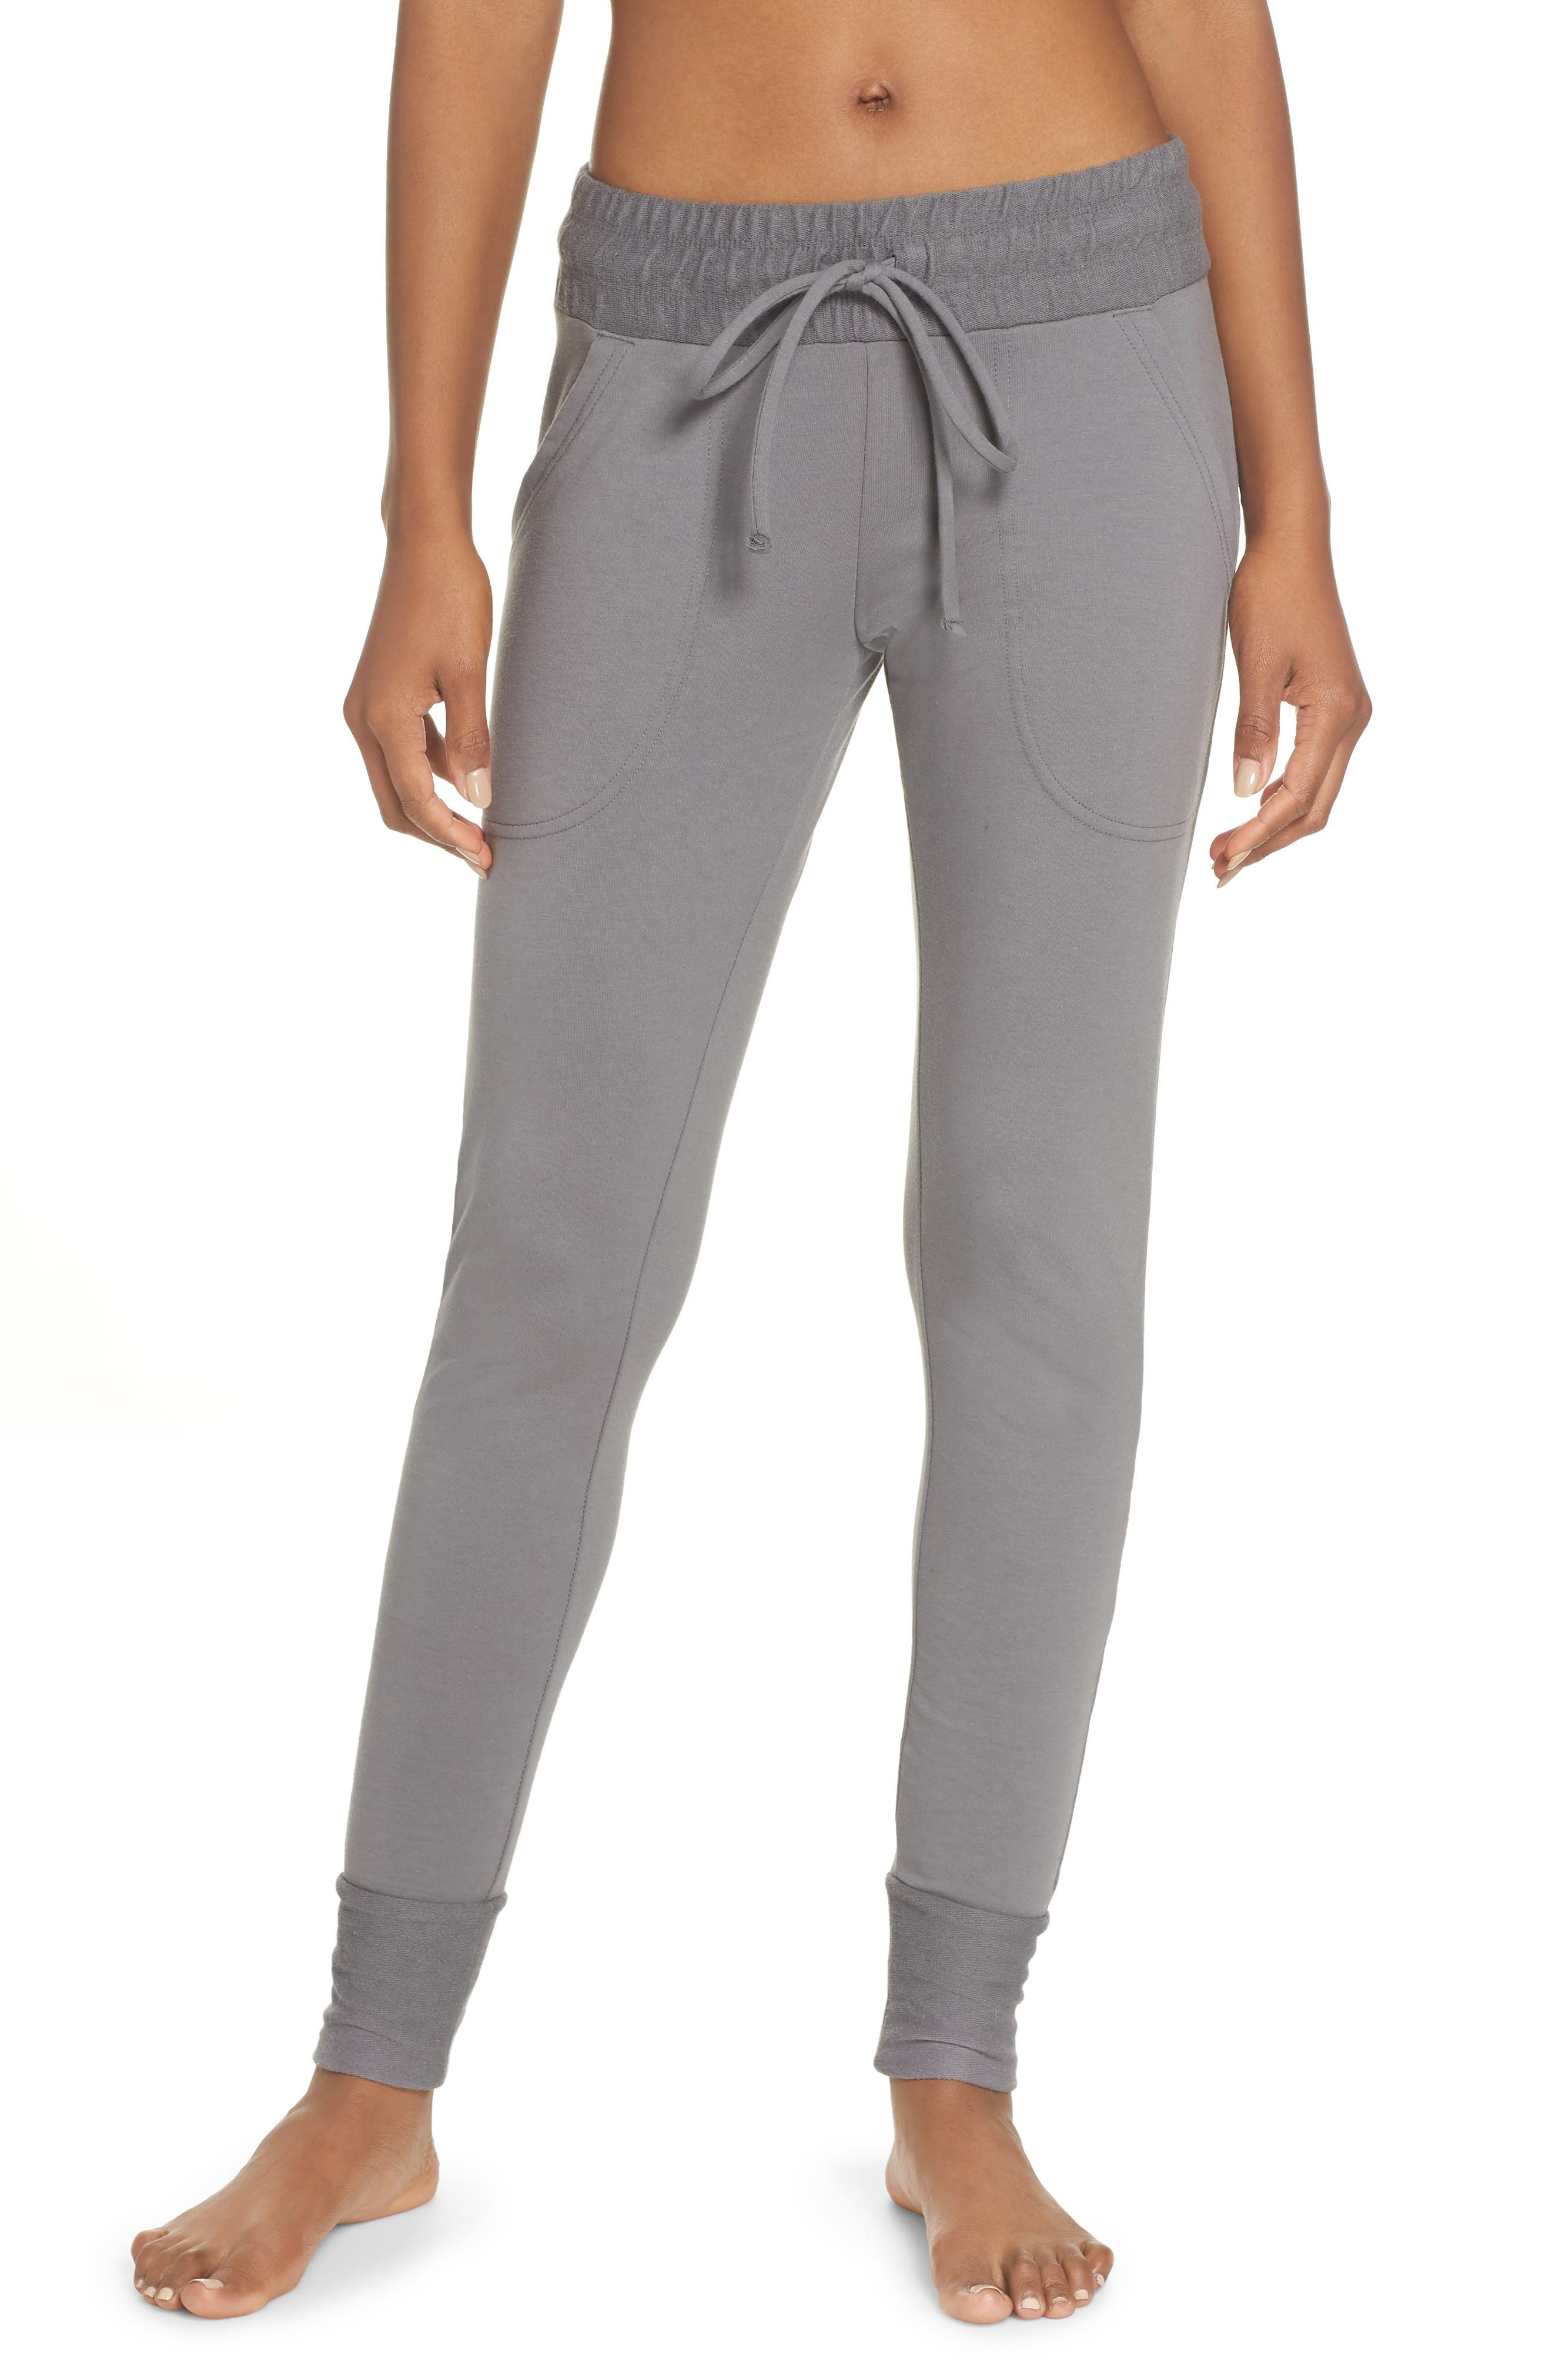 FREE PEOPLE MOVEMENT, Sunny Skinny Sweatpants, Main thumbnail 1, color, DARK GREY